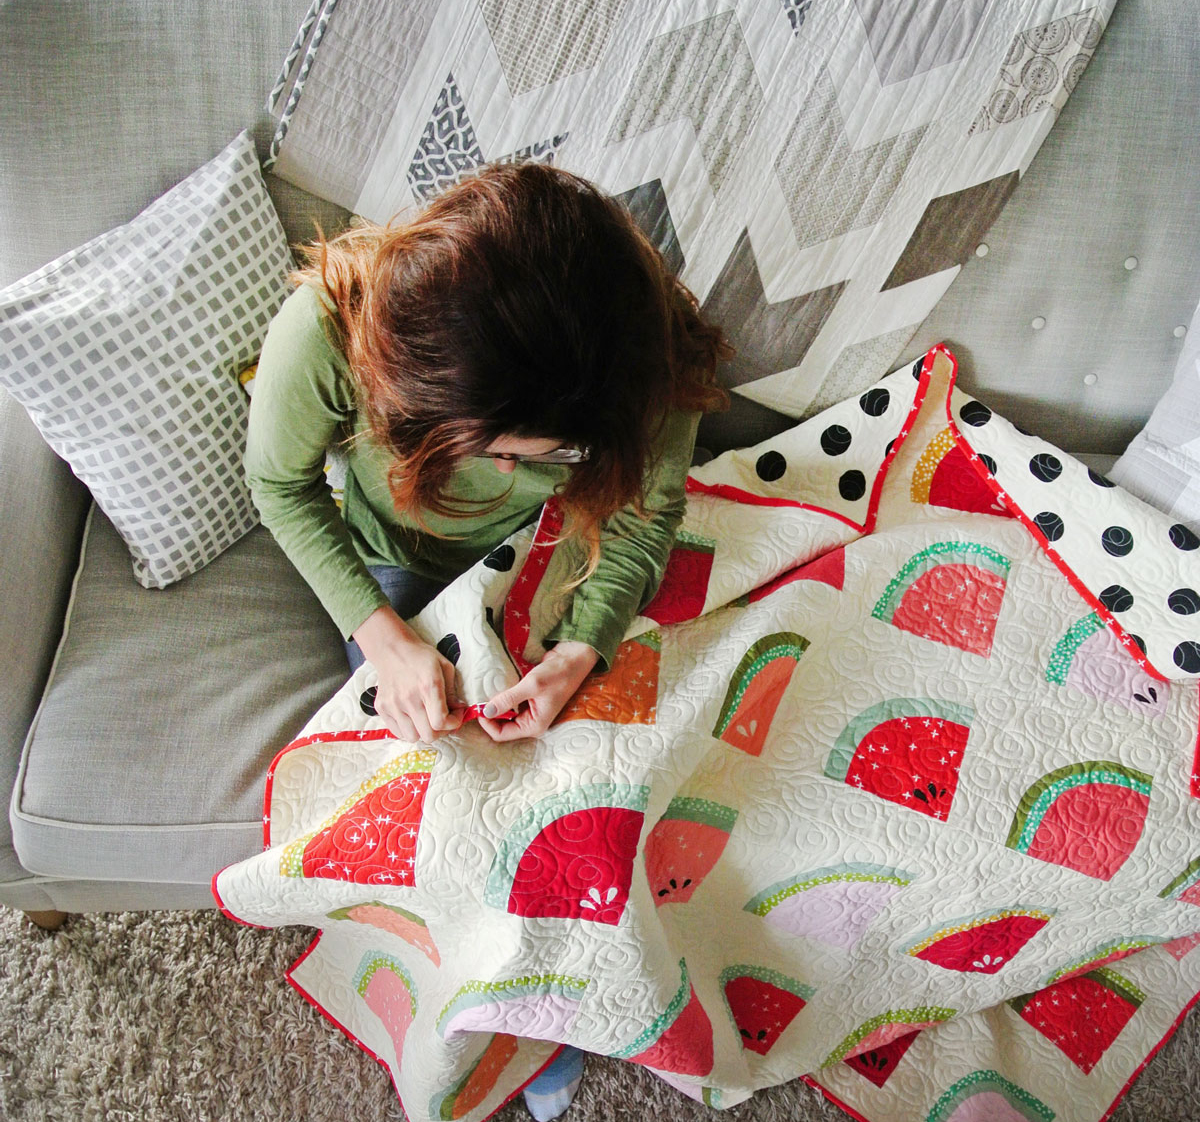 A complete tutorial on how to sew binding on a quilt. This video tutorial shows how to sew binding and attach it seamlessly to the edges of a quilt   Suzy Quilts - https://suzyquilts.com/how-to-sew-binding-on-a-quilt/